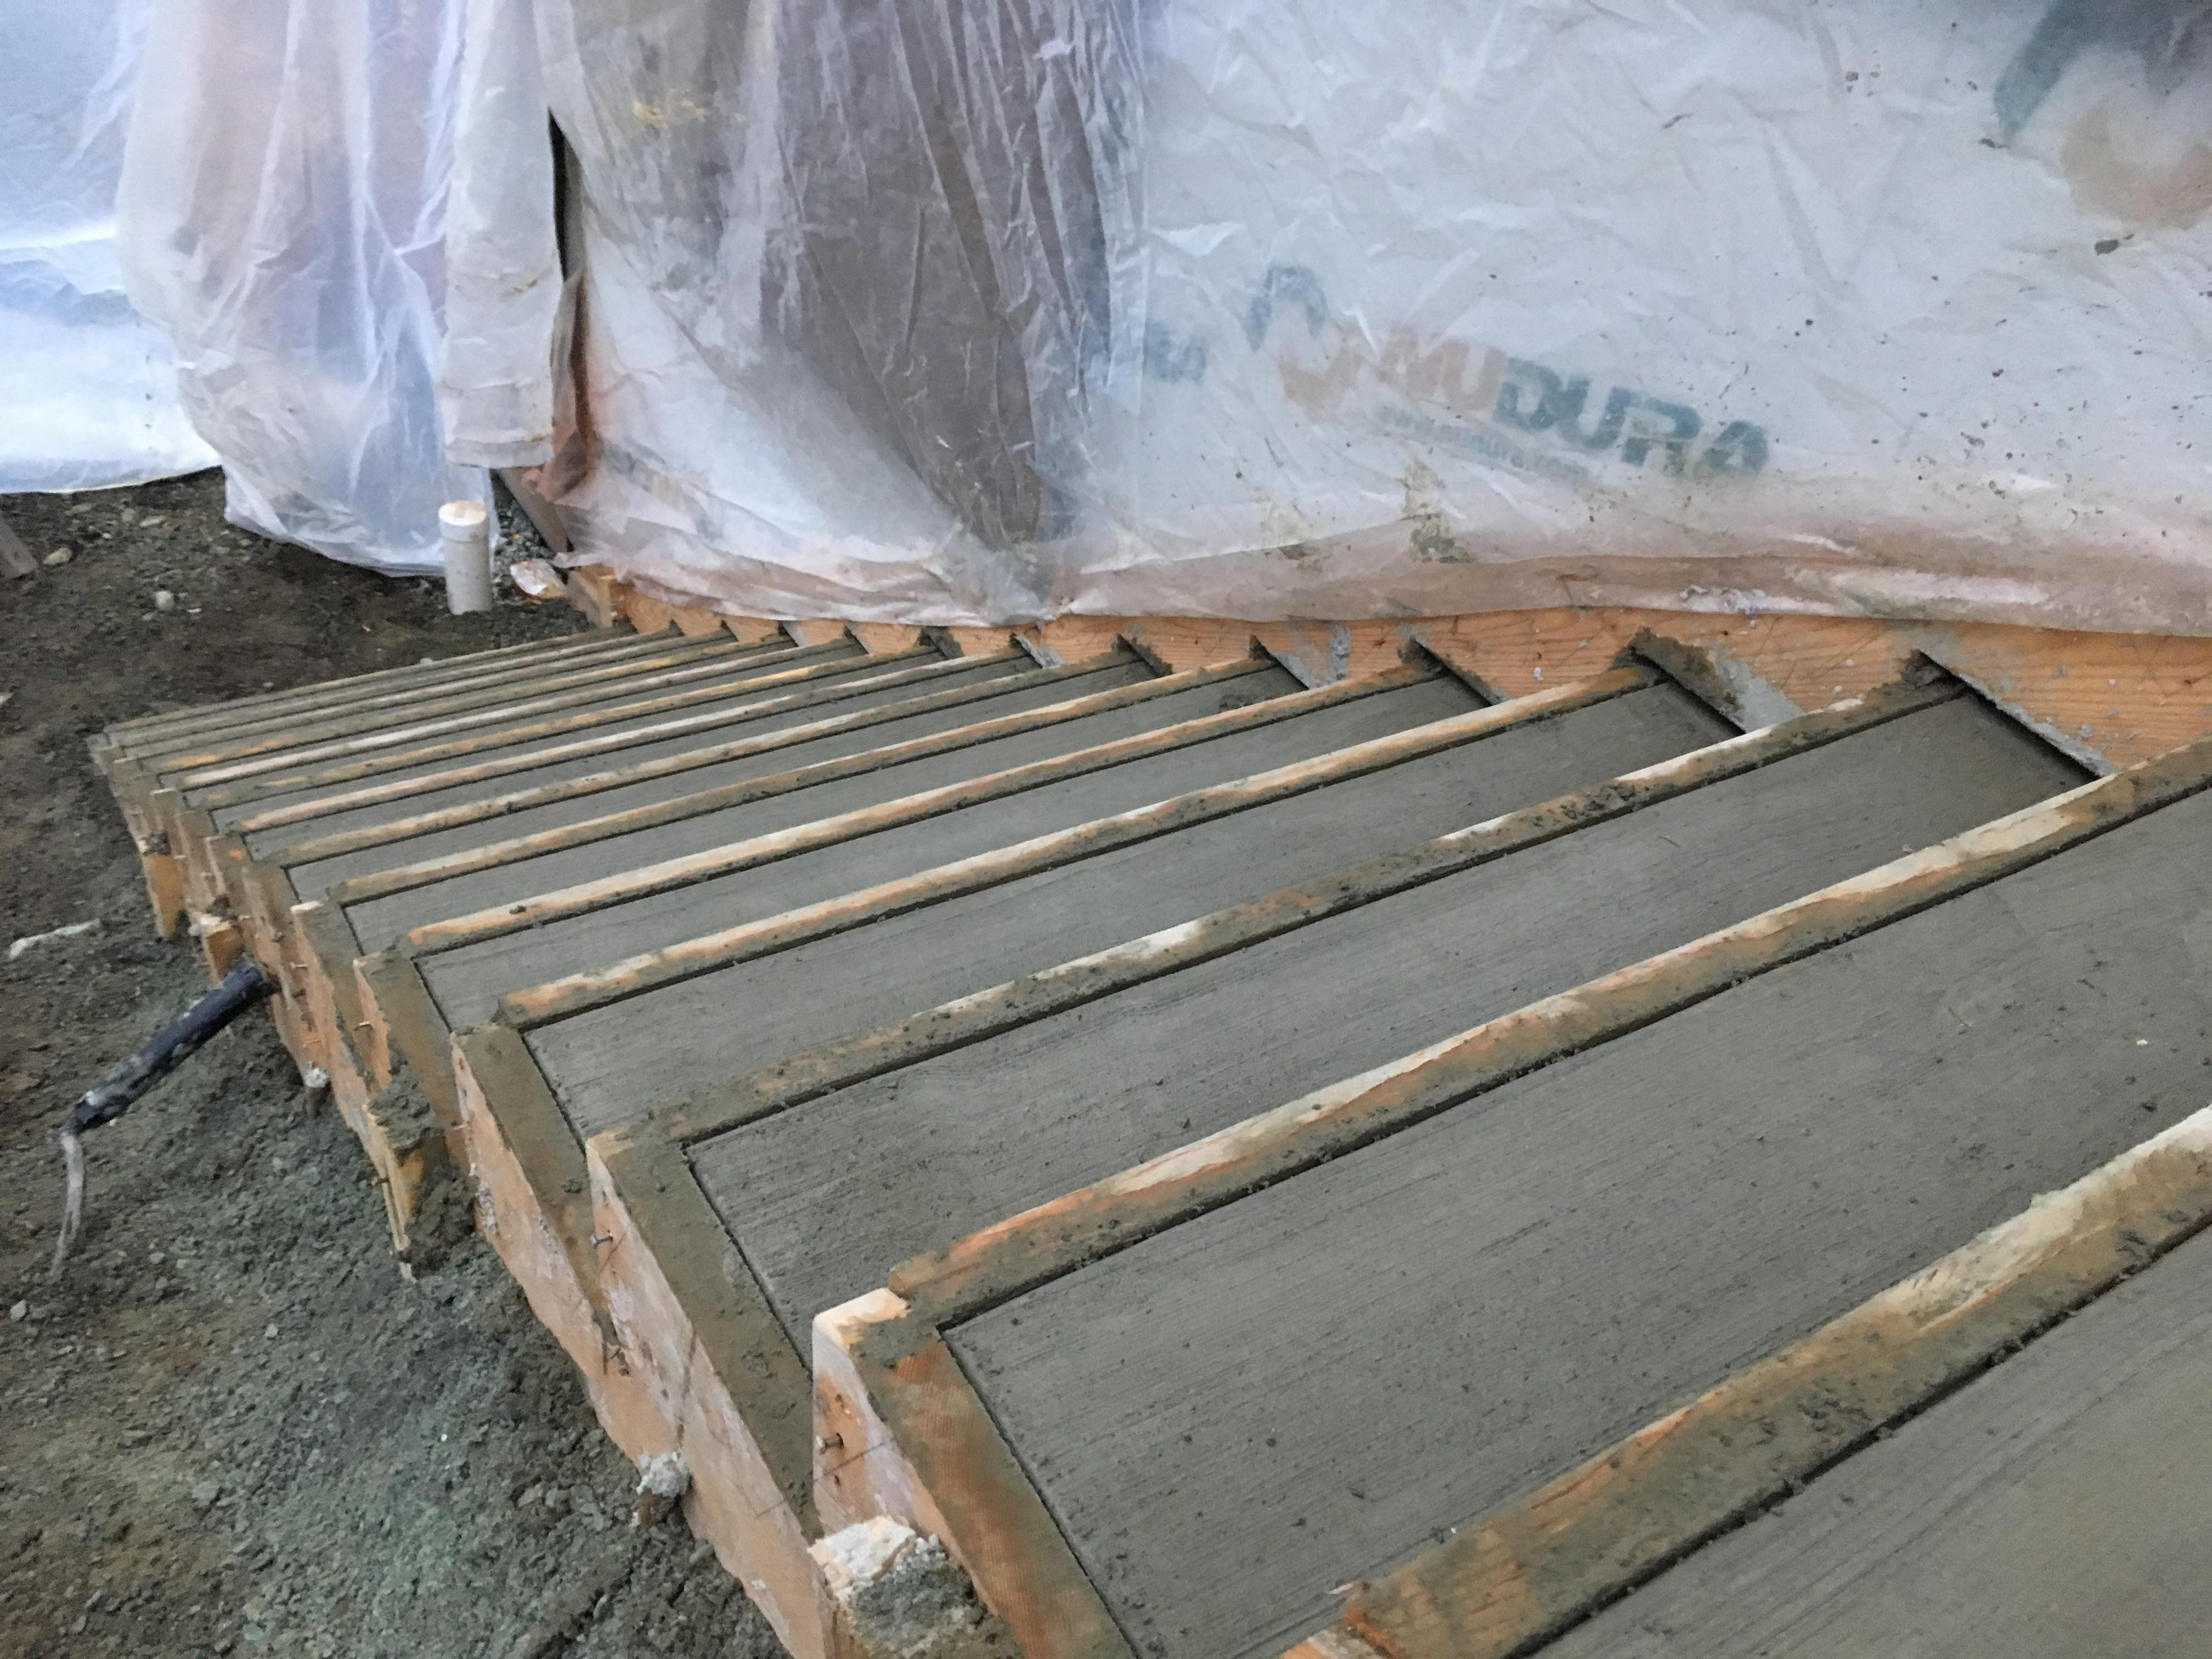 Pound 4 Pound, Framing and Forming. Concrete stairs fill